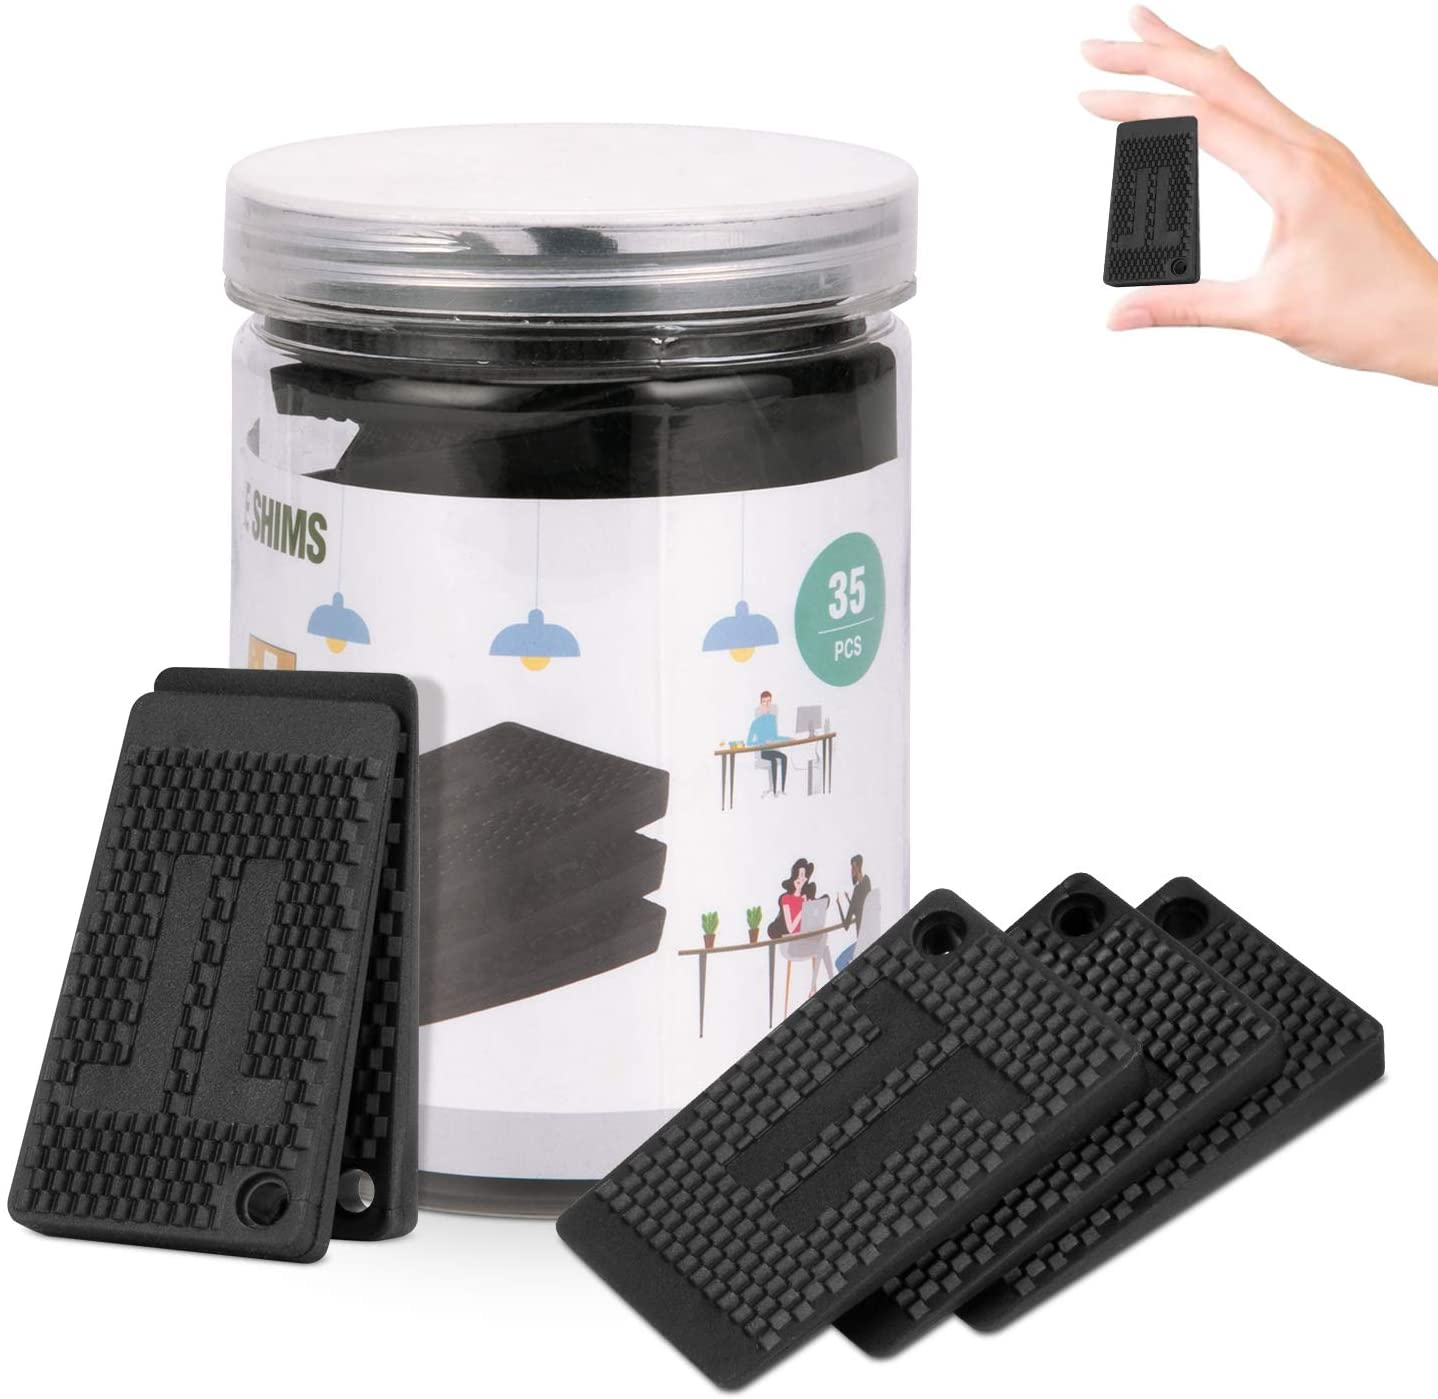 Plastic Shims Furniture Pads Levelers Spring Bombing new work new work 35 D and Strong Durable PC